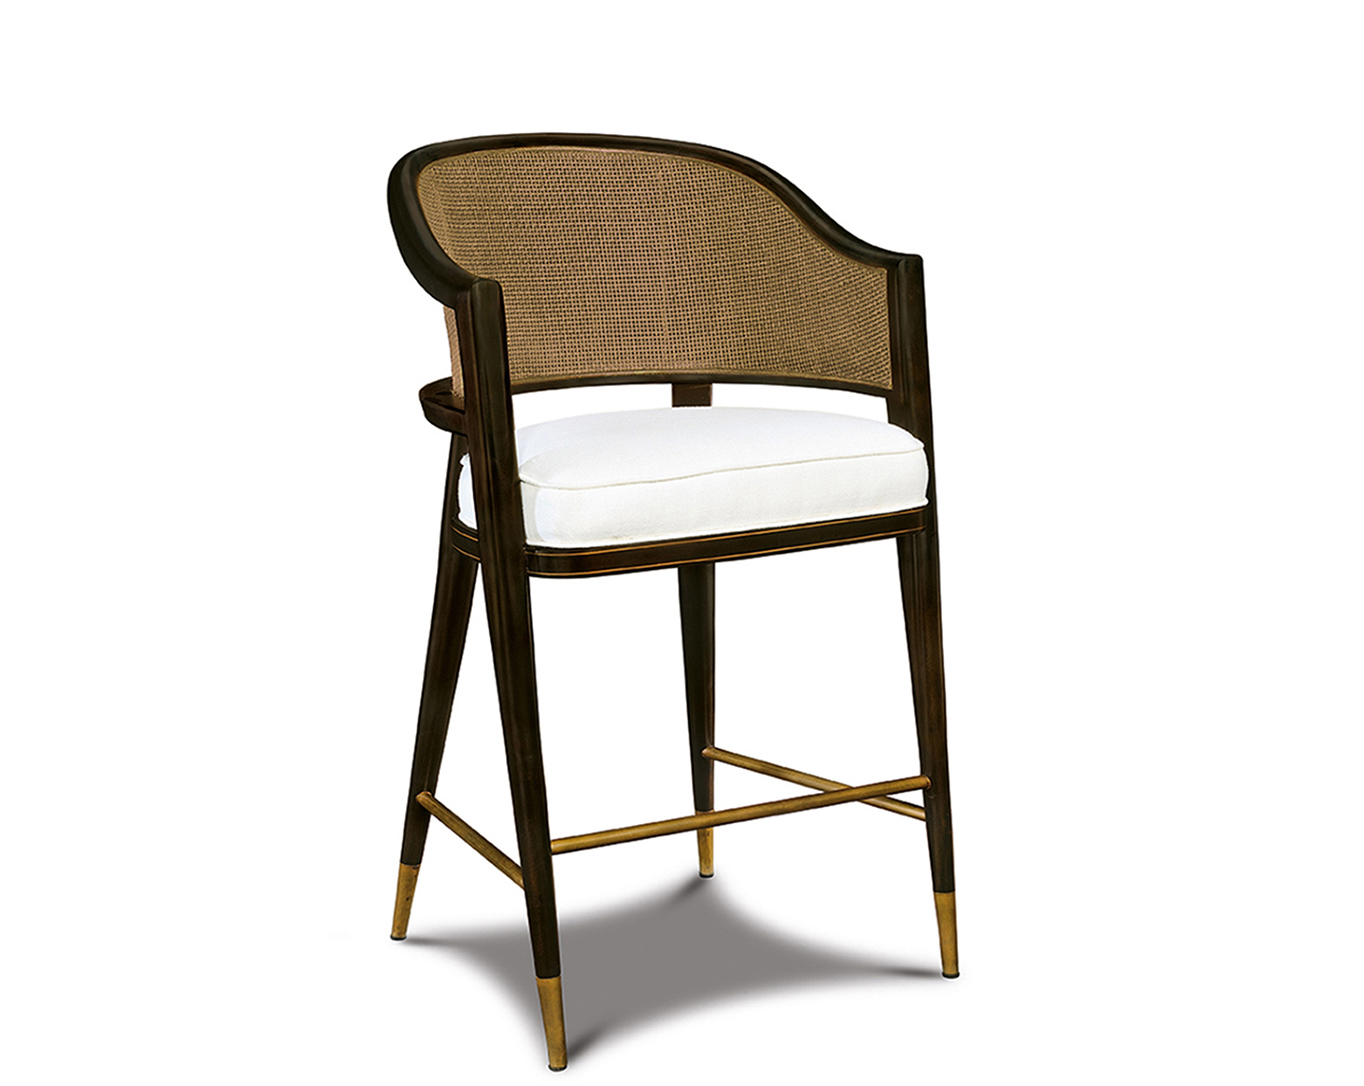 GRASSE BAR STOOL COUNTER HEIGHT